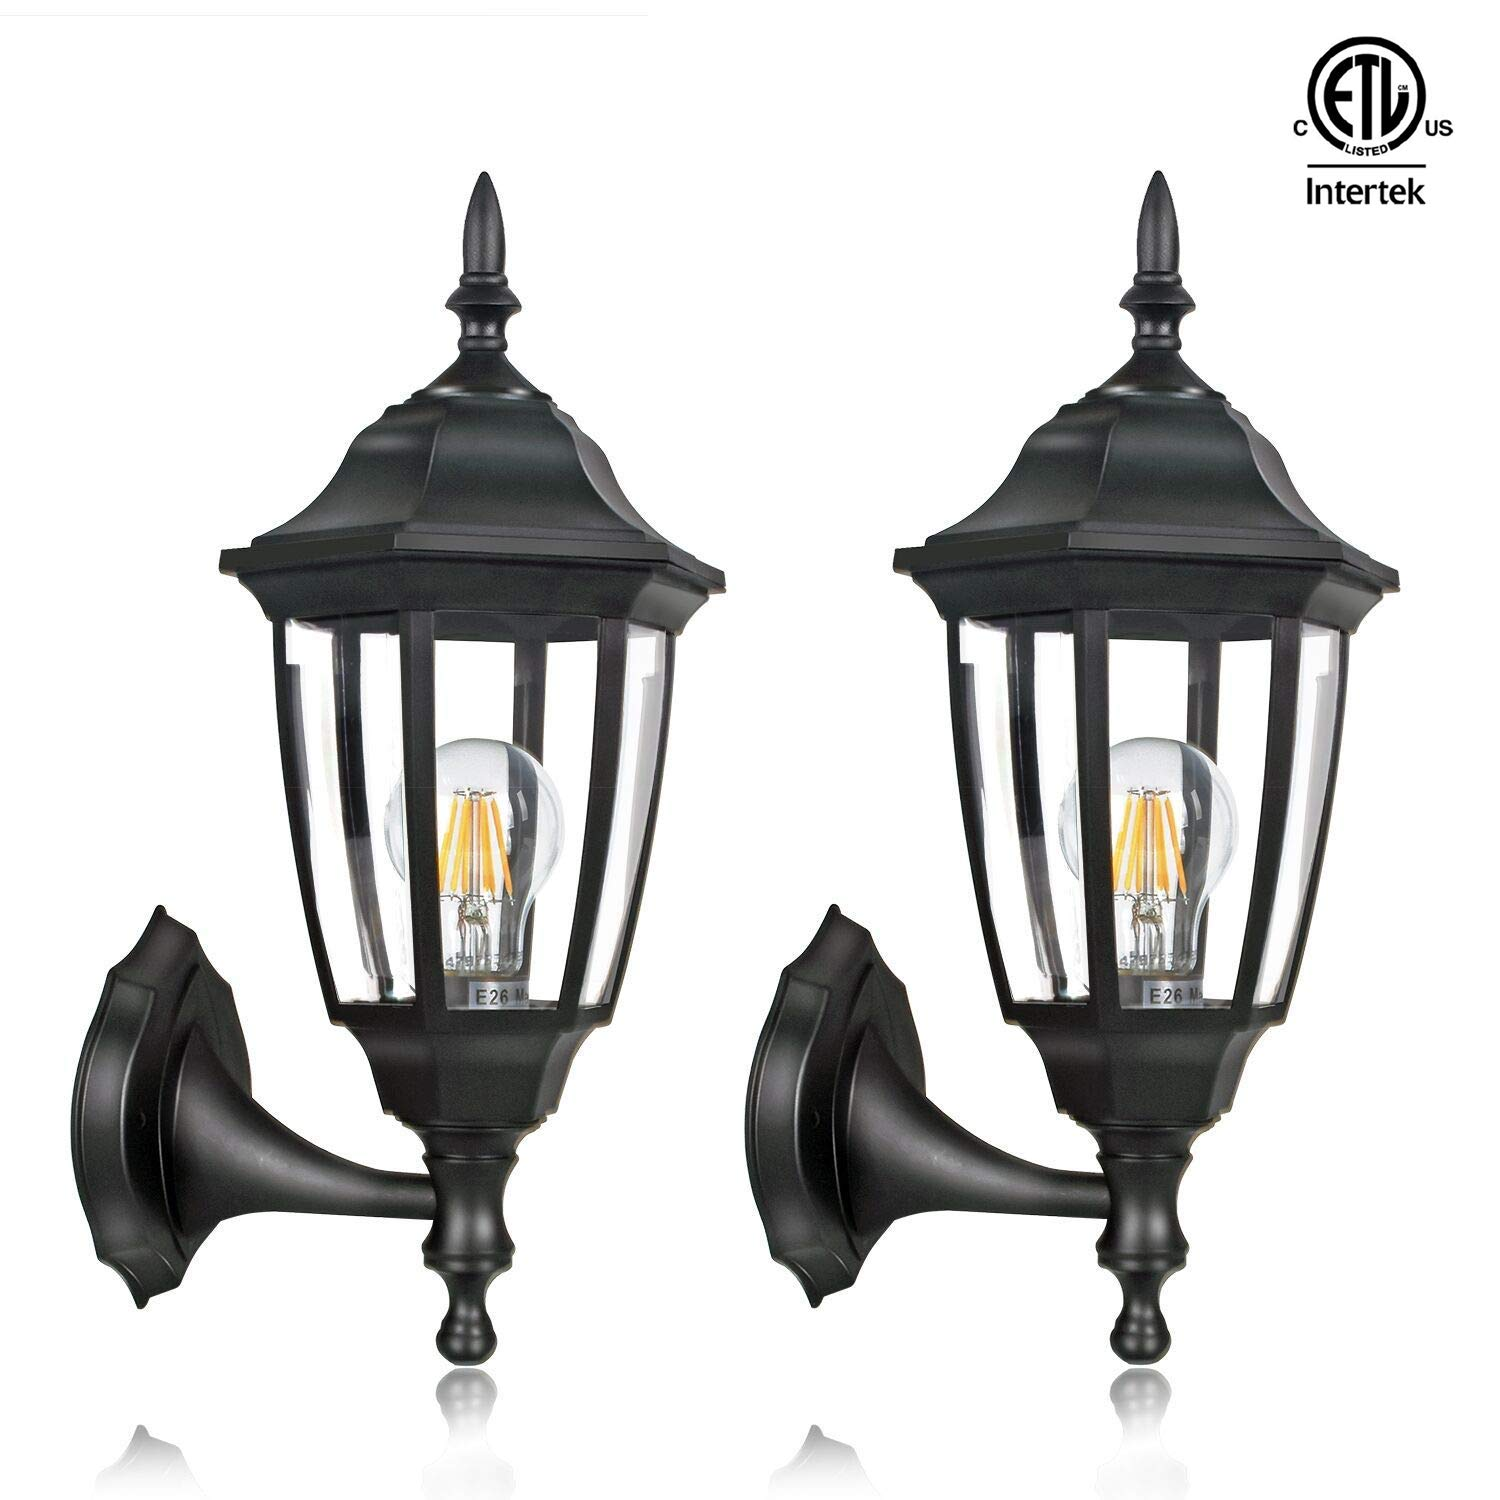 FUDESY 2-Pack Outdoor Wall Lanterns,Corded-Electric 12W Plastic LED Exterior Wall Lights,Waterproof Retro Black Porch Light Fixture Wall Mount for Garage,Yard,Front Door,Deck,FDS341B2 by FUDESY (Image #1)